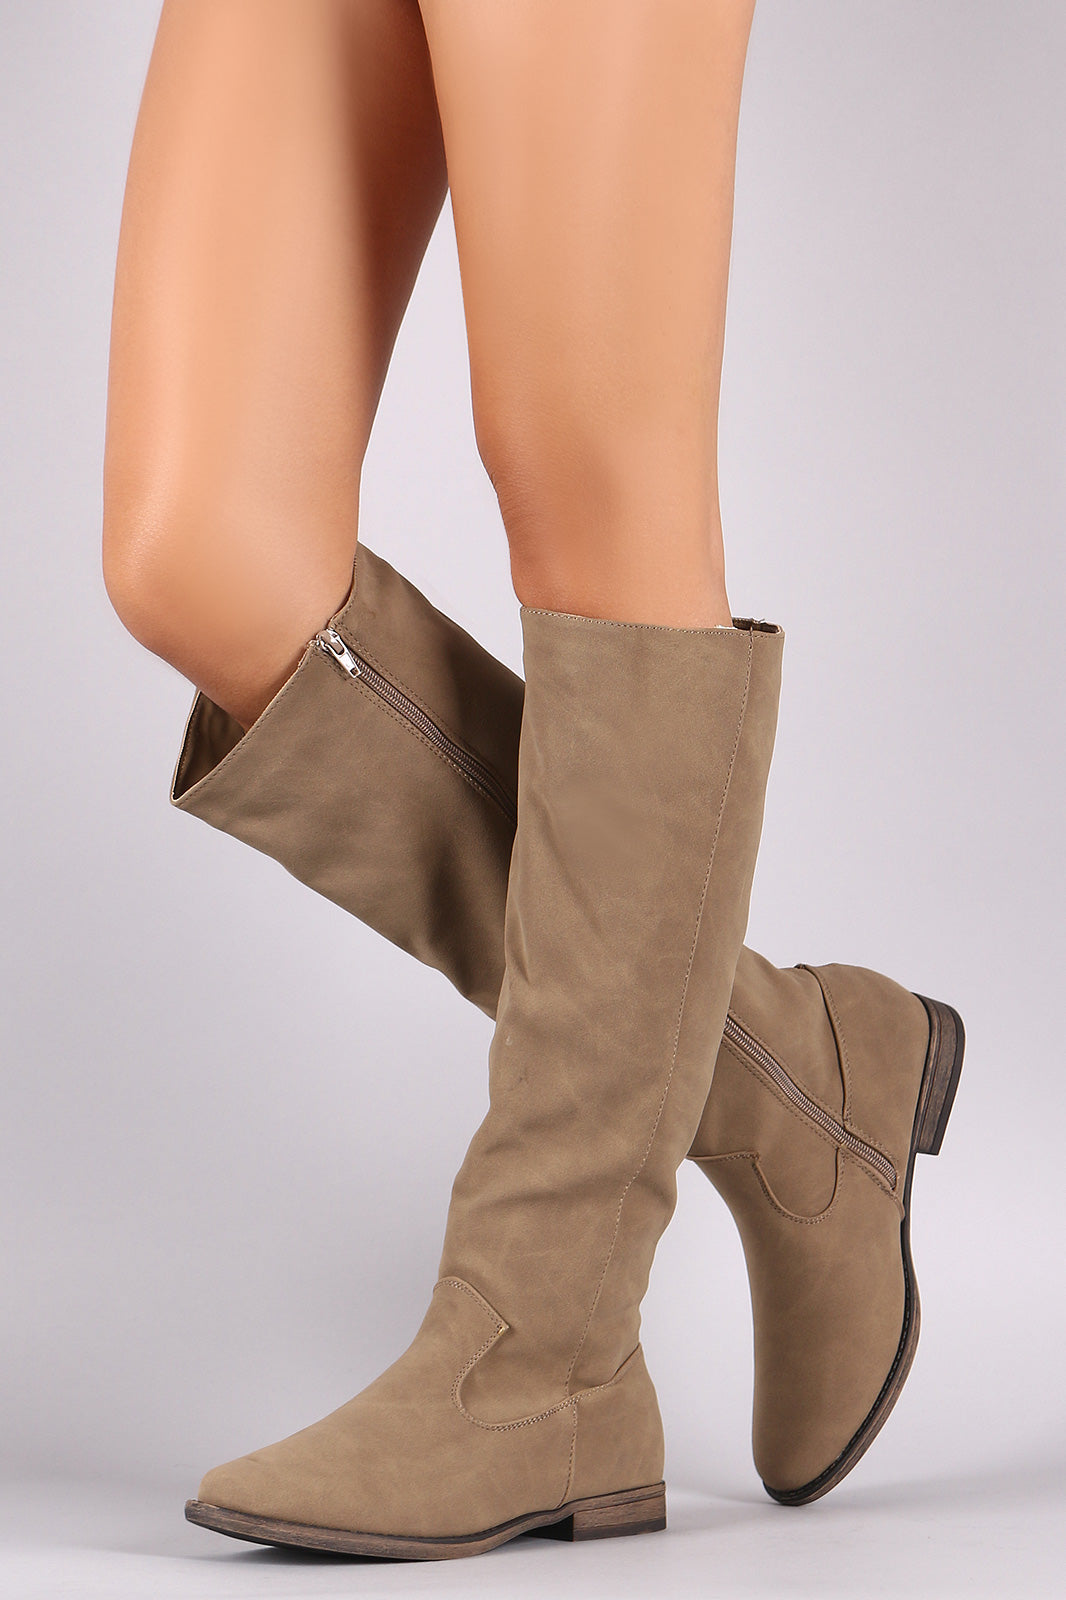 Riding Knee High Boots For Women By Bamboo | Shop Women Comfity Nubuck Plain Riding Knee High Boots A Classic Knee High Boots And Low Block Heel